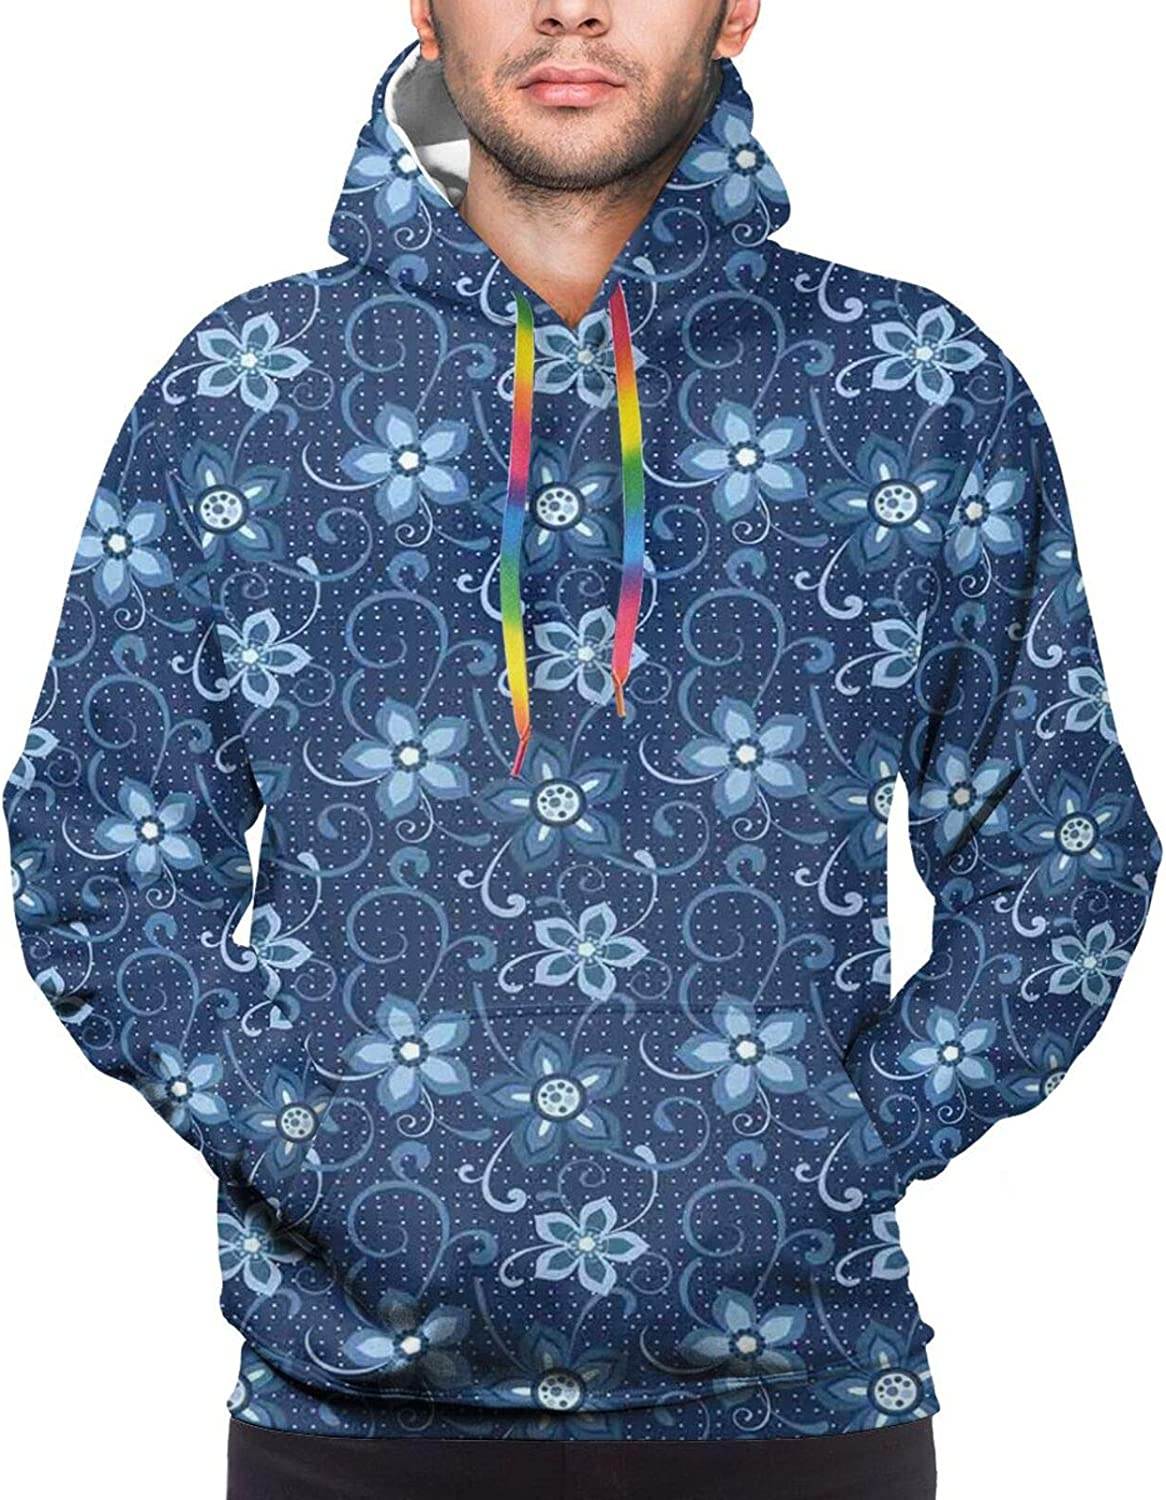 Men's Hoodies Sweatshirts,Polka Dotted Background with Floral Composition Curves and Swirls Abstract